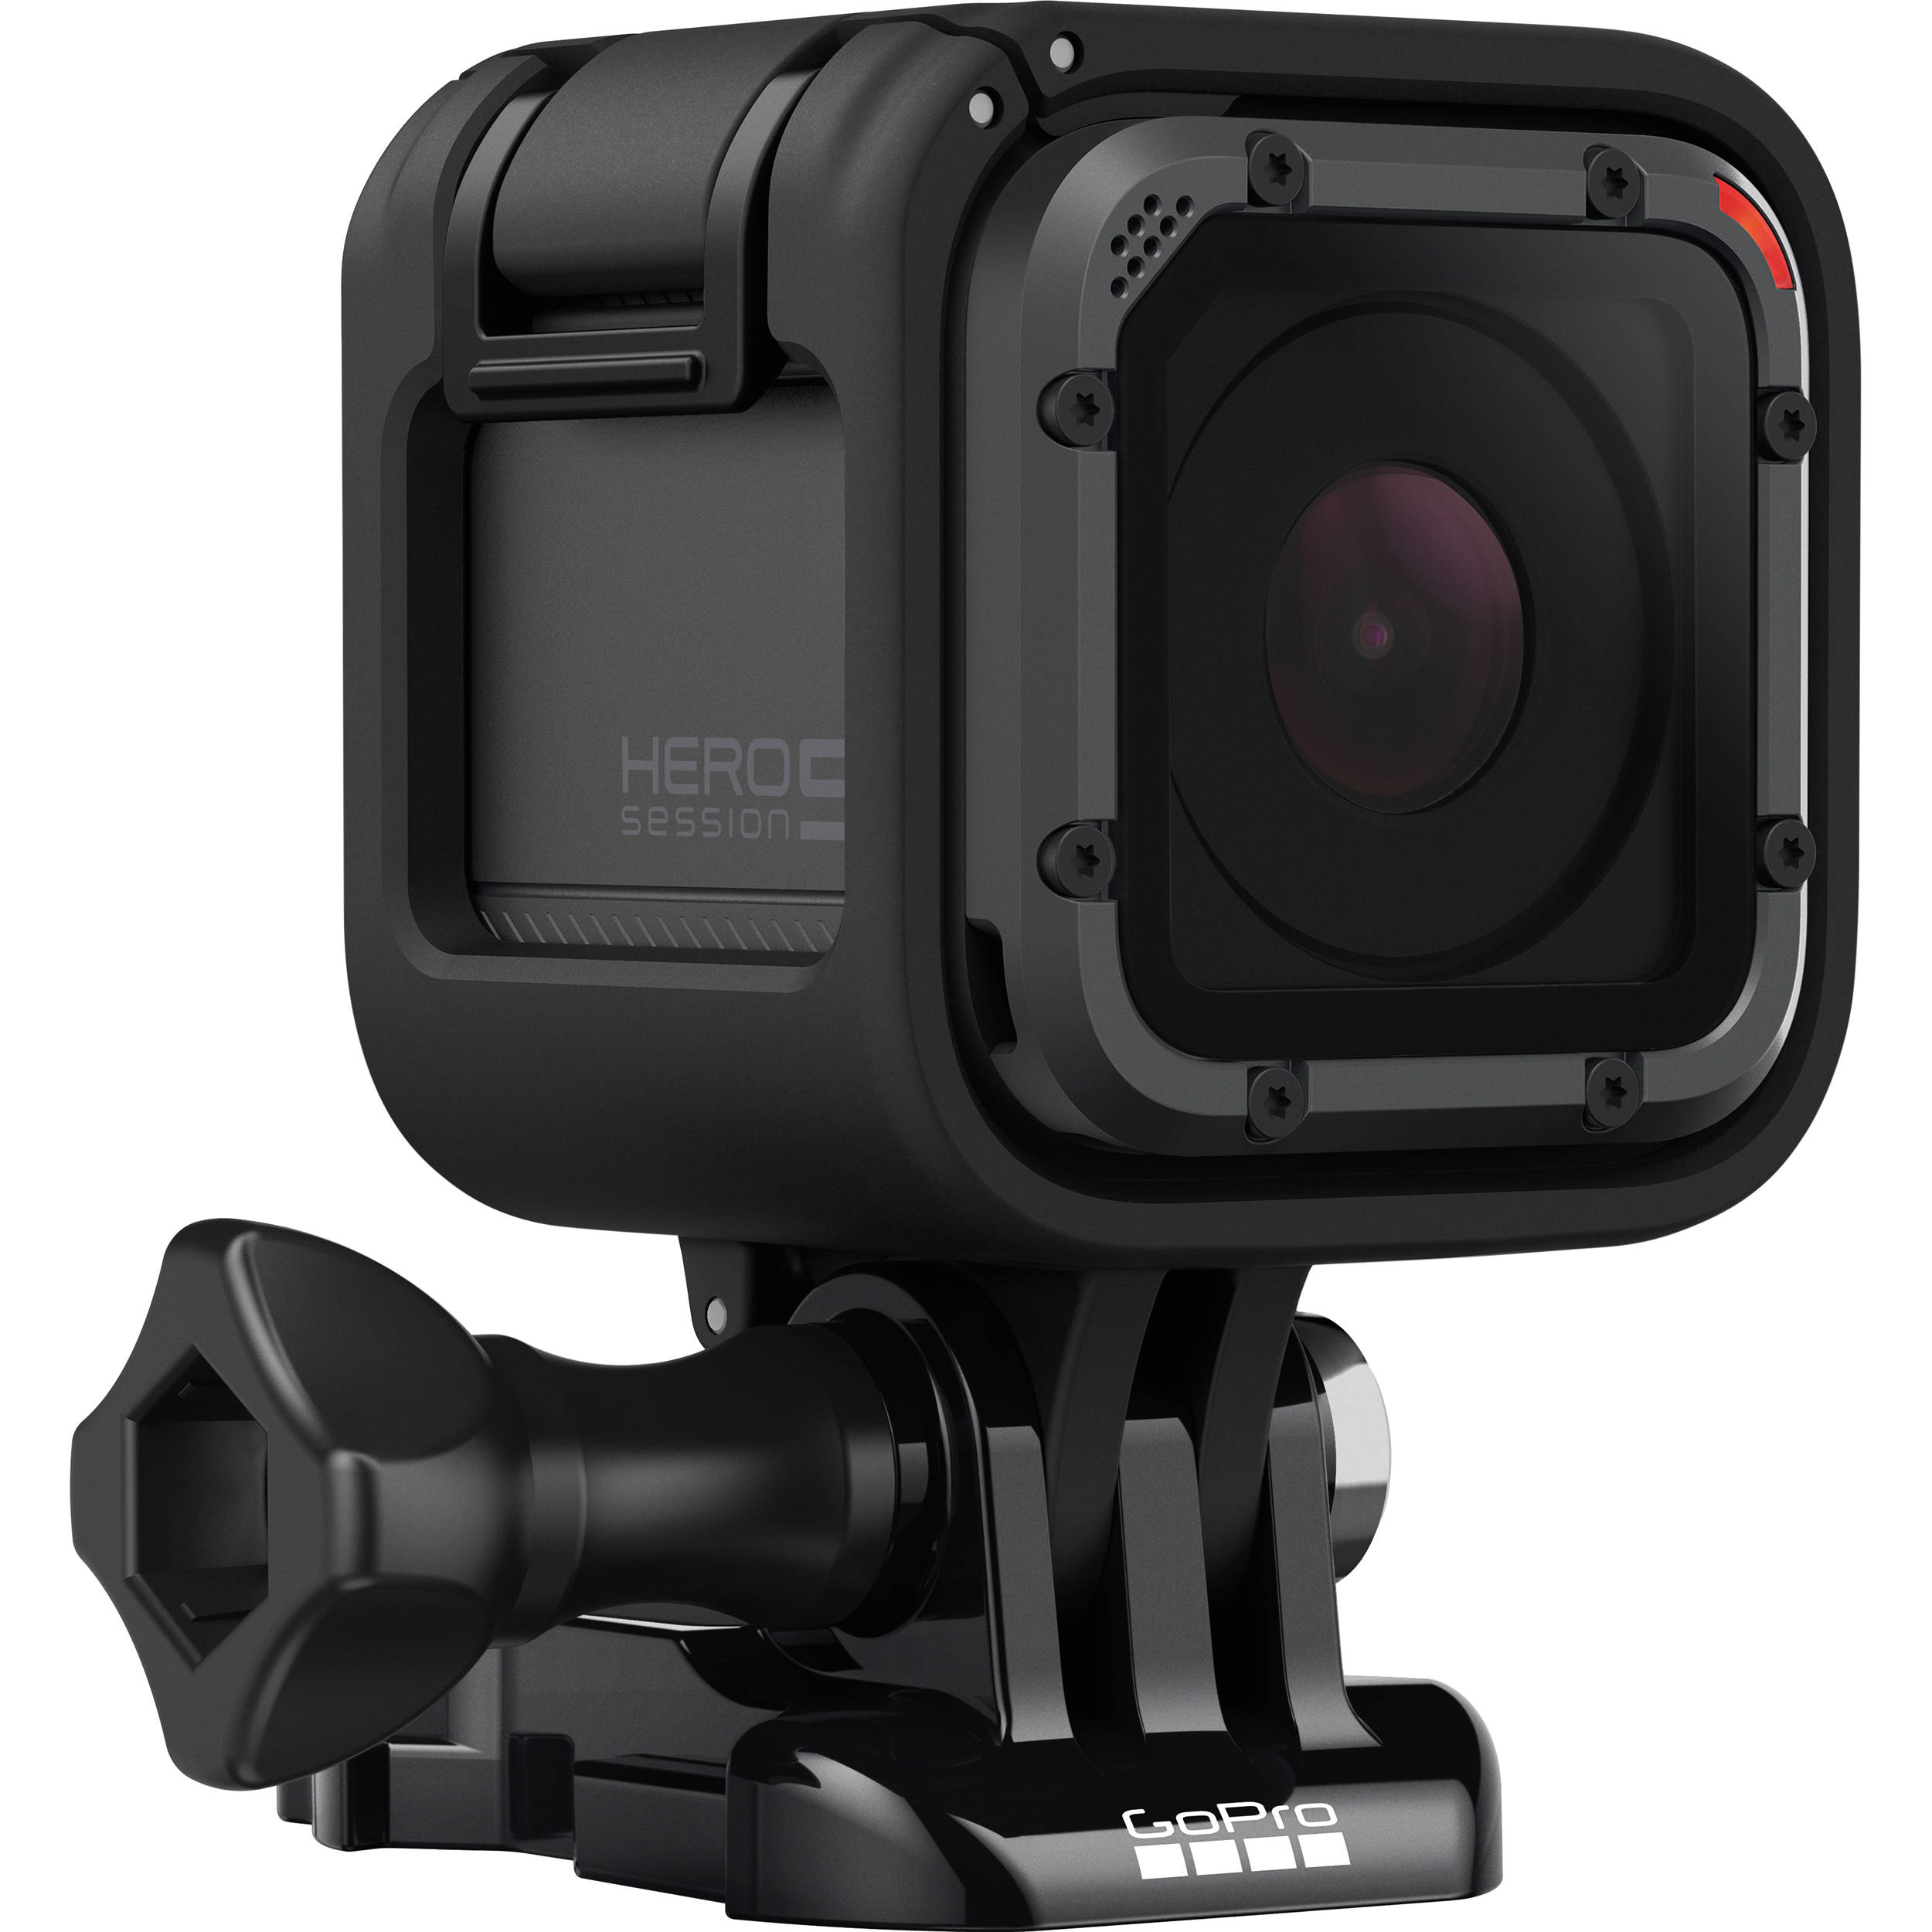 gopro hero5 session chdhs 502 b h photo video. Black Bedroom Furniture Sets. Home Design Ideas